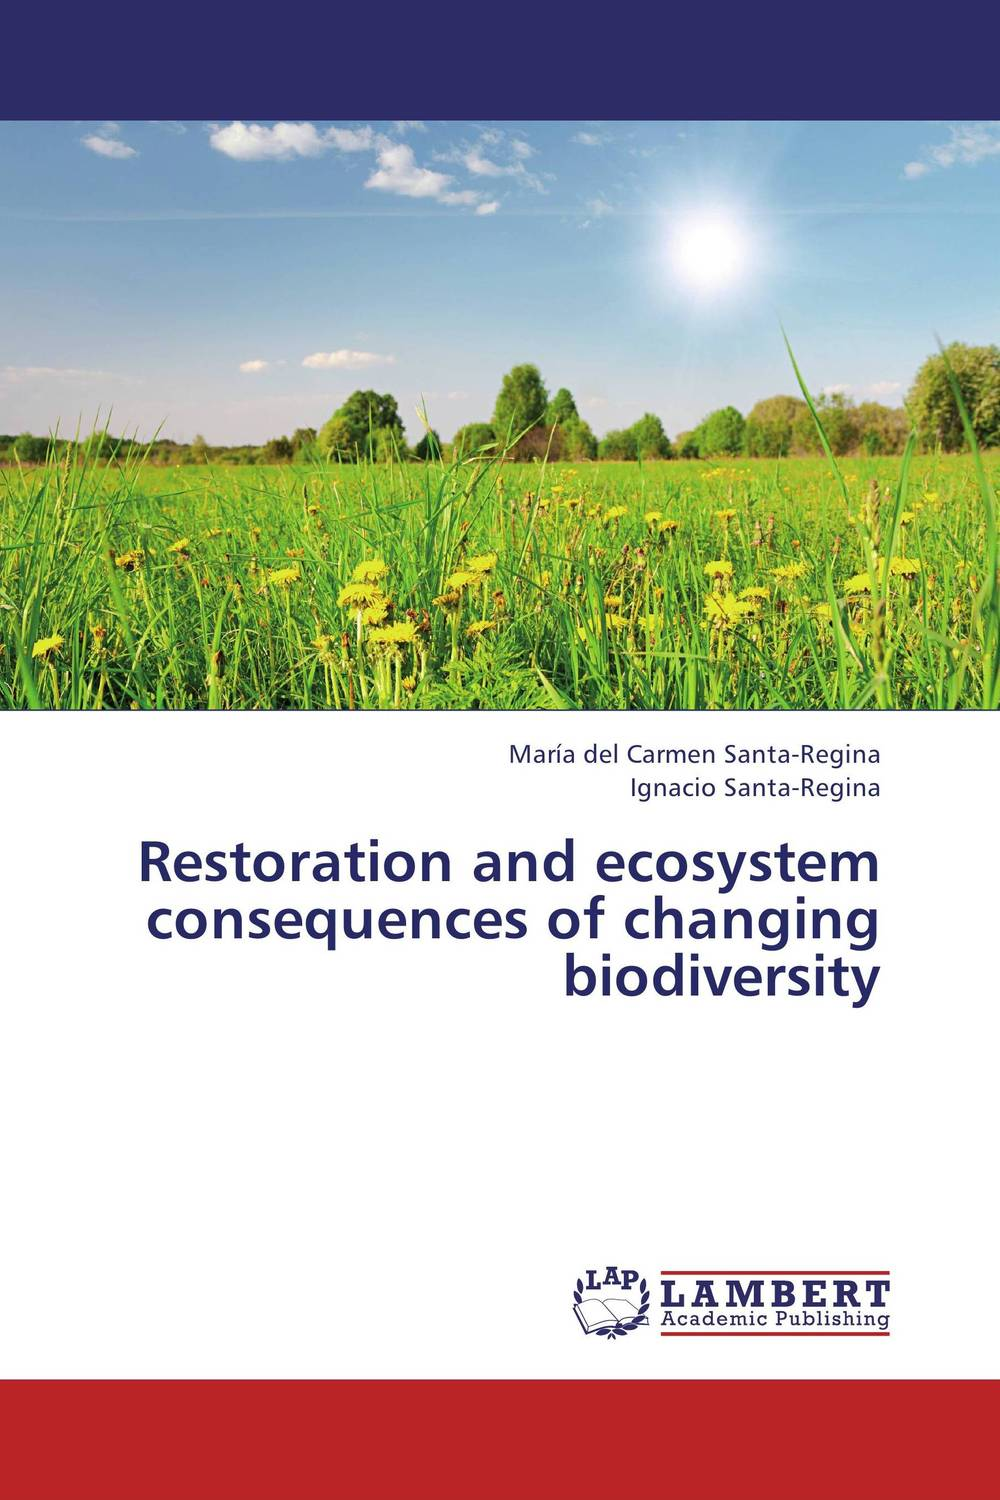 Restoration and ecosystem consequences of changing biodiversity